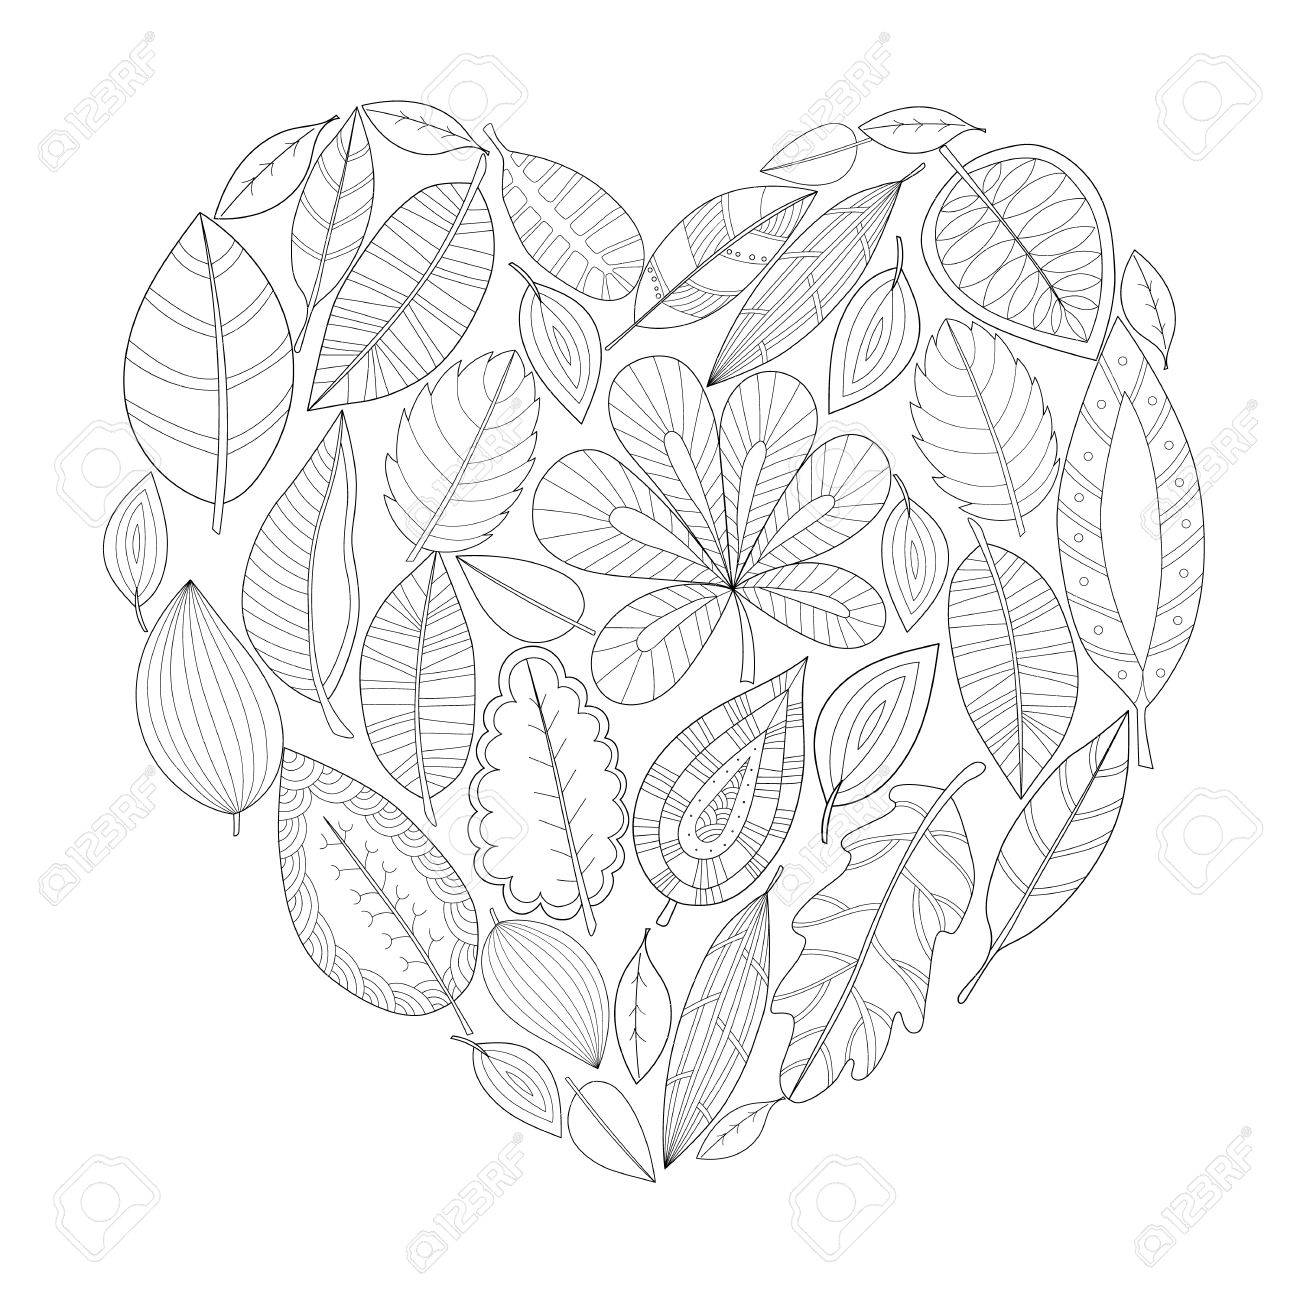 Autumn Leaves In The Shape Of Heart Hand Drawn Adult Coloring Page Stock Vector